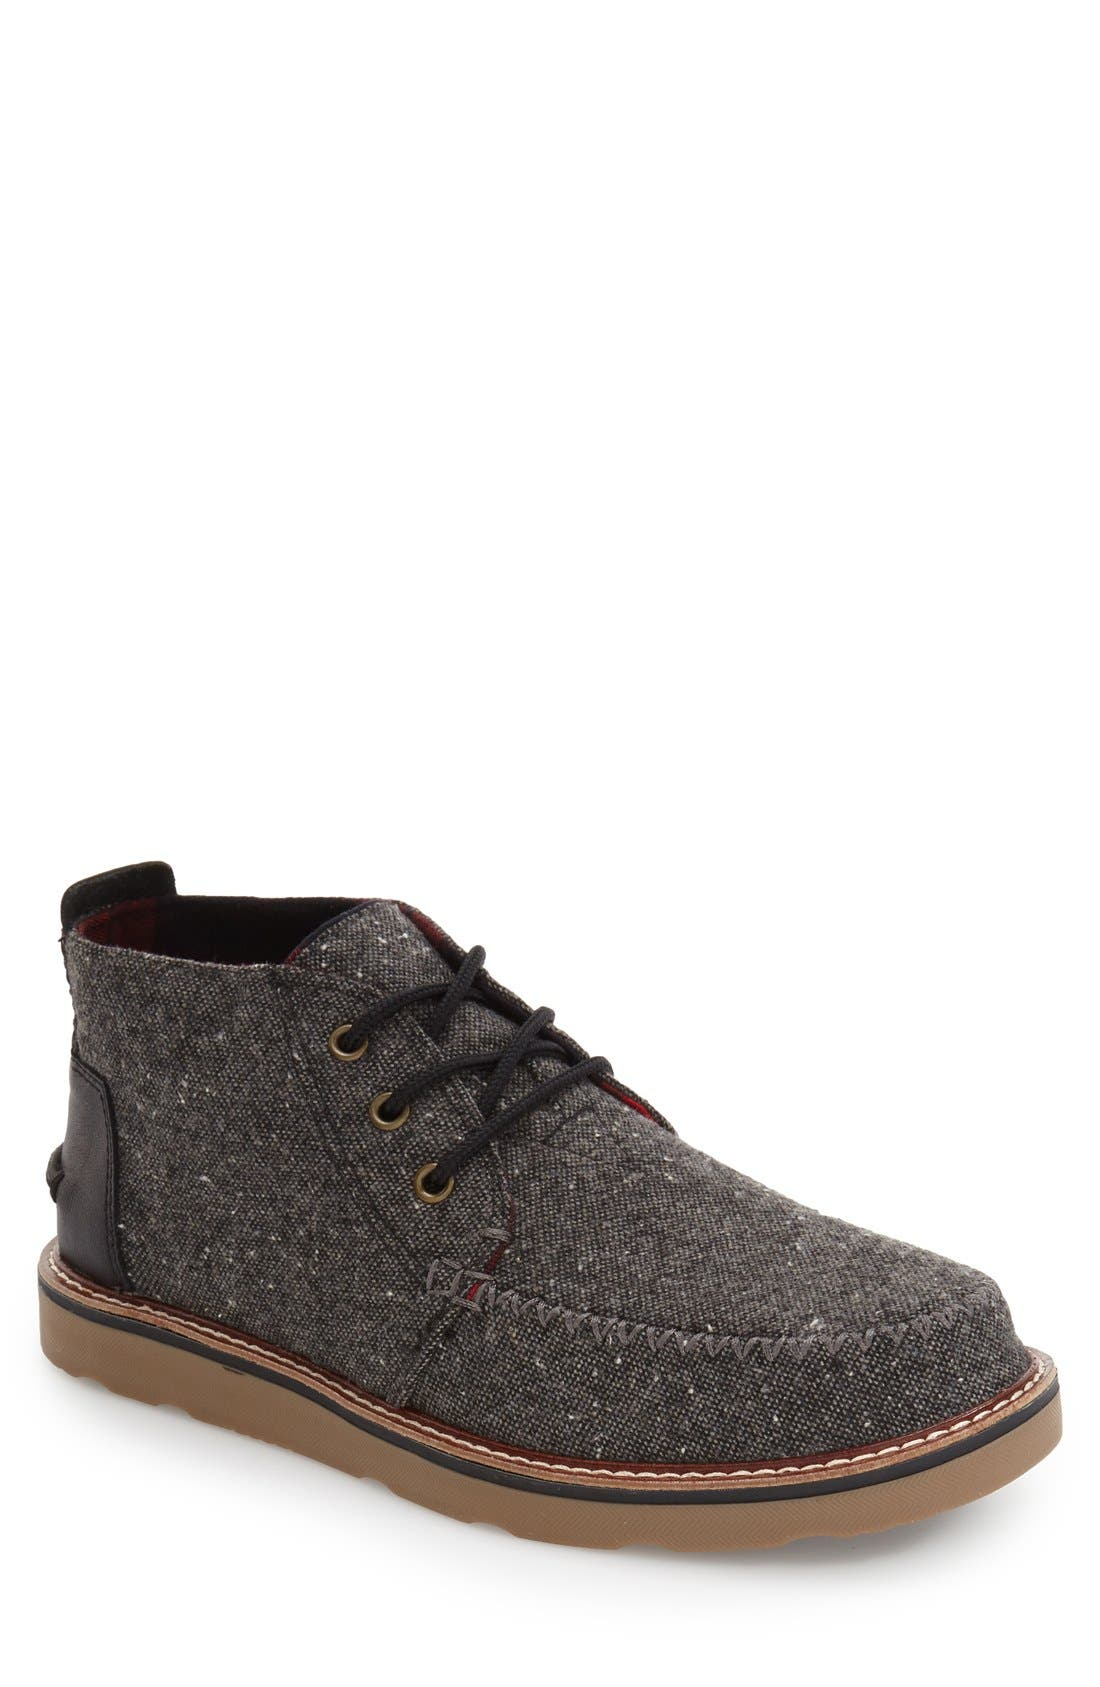 TOMS Chukka Boot (Men)